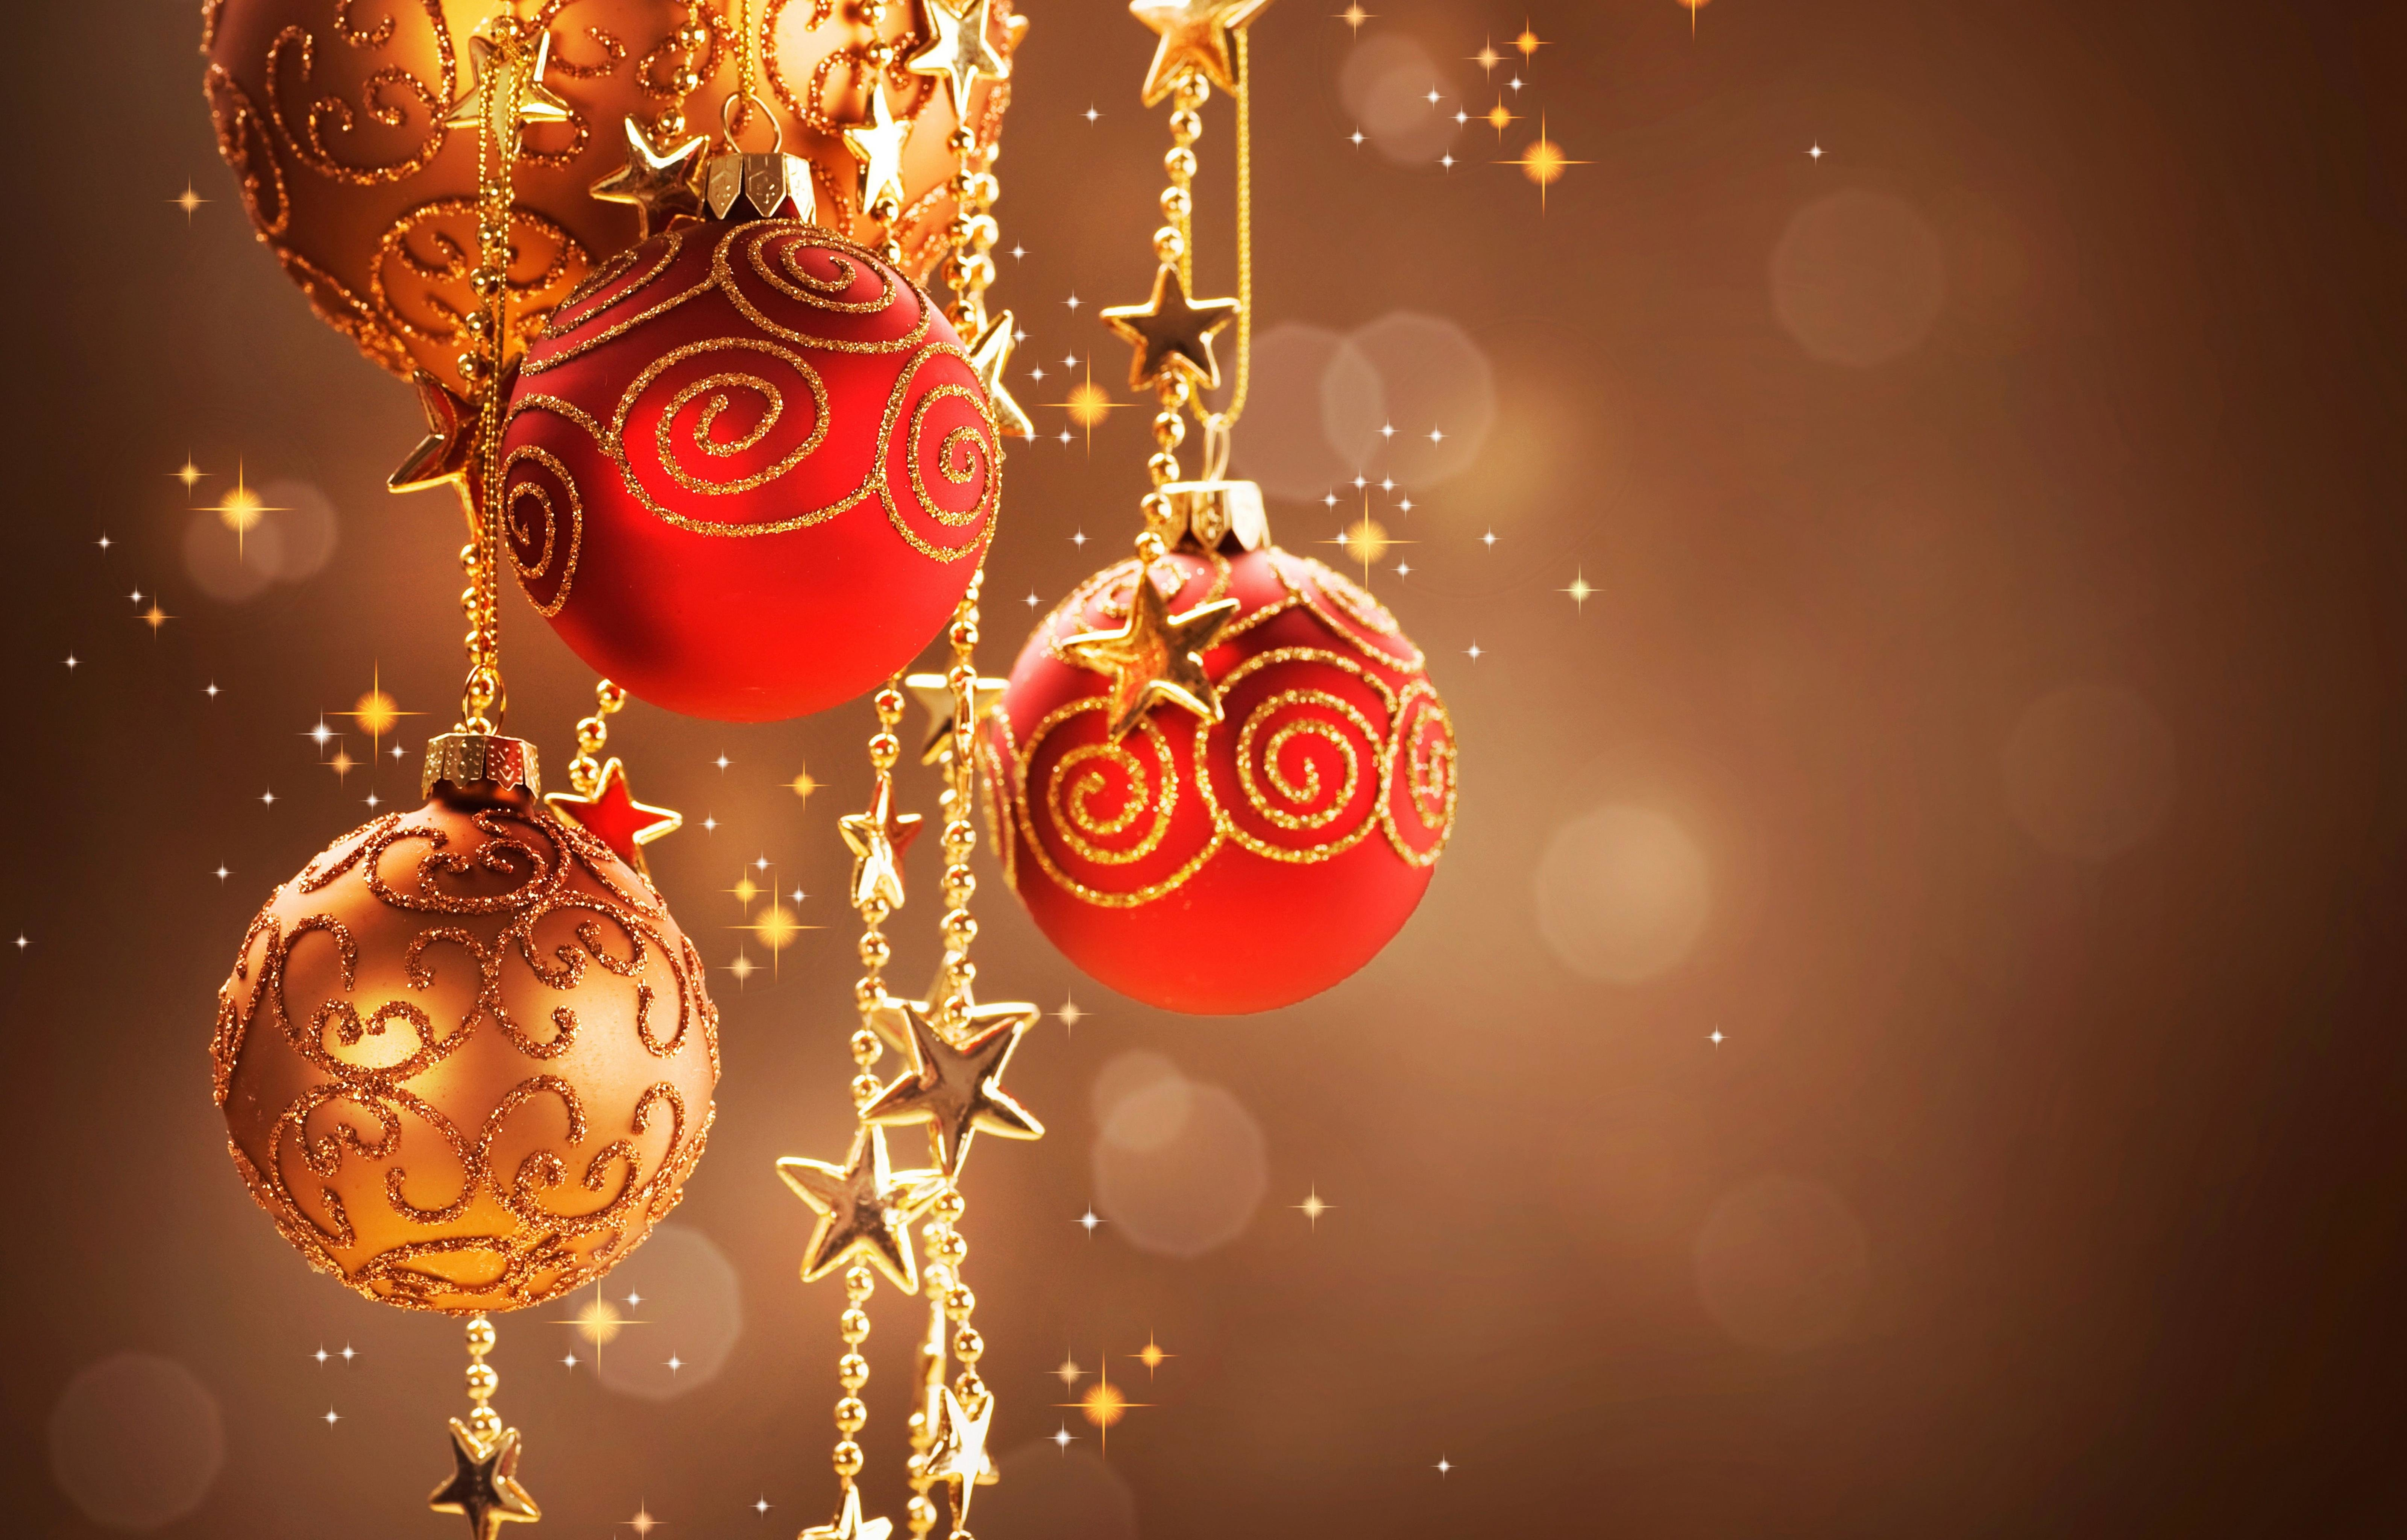 download hd 6400x4096 christmas ornamentsdecorations computer background id435817 for free